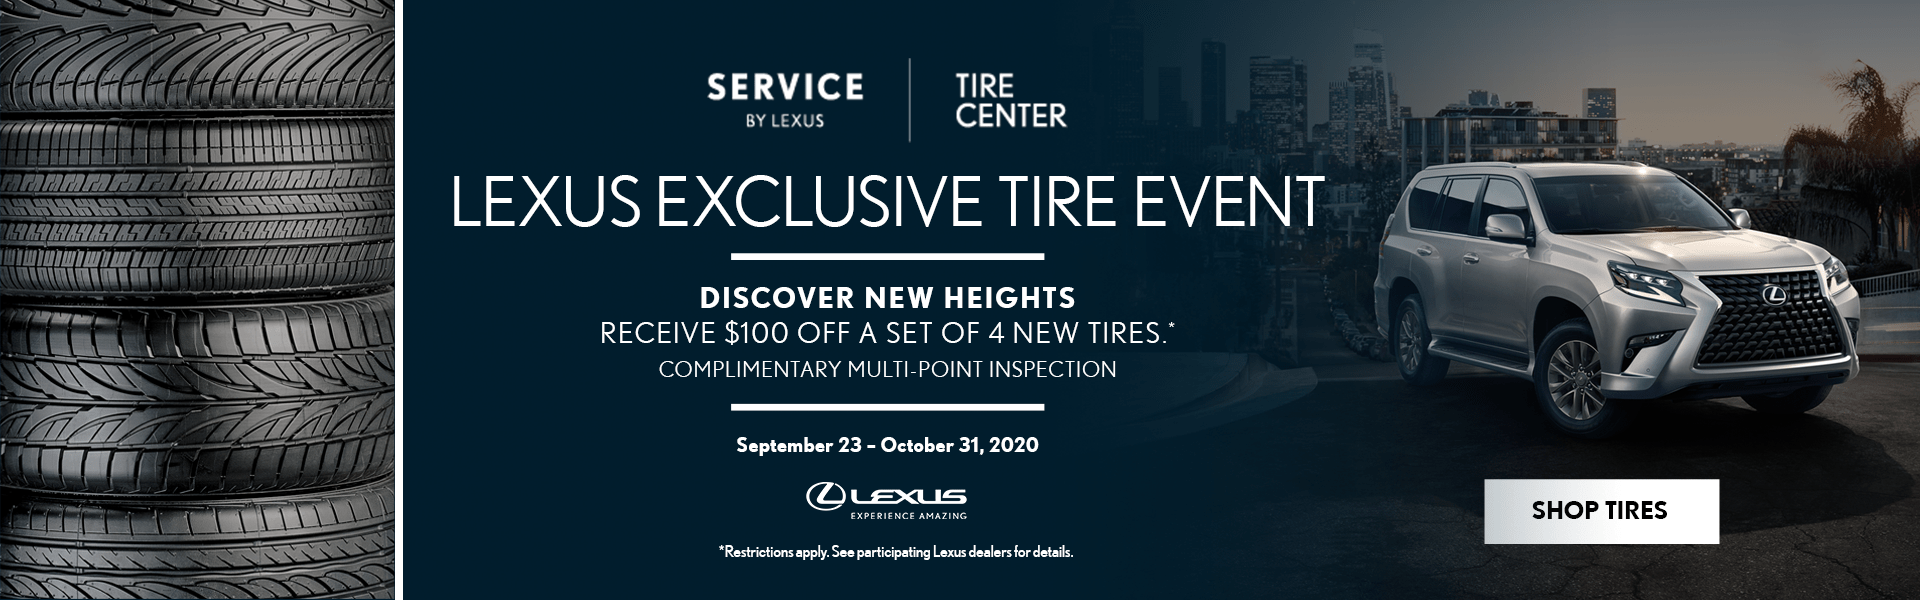 October-Tire-Event-Hompepage-Banner